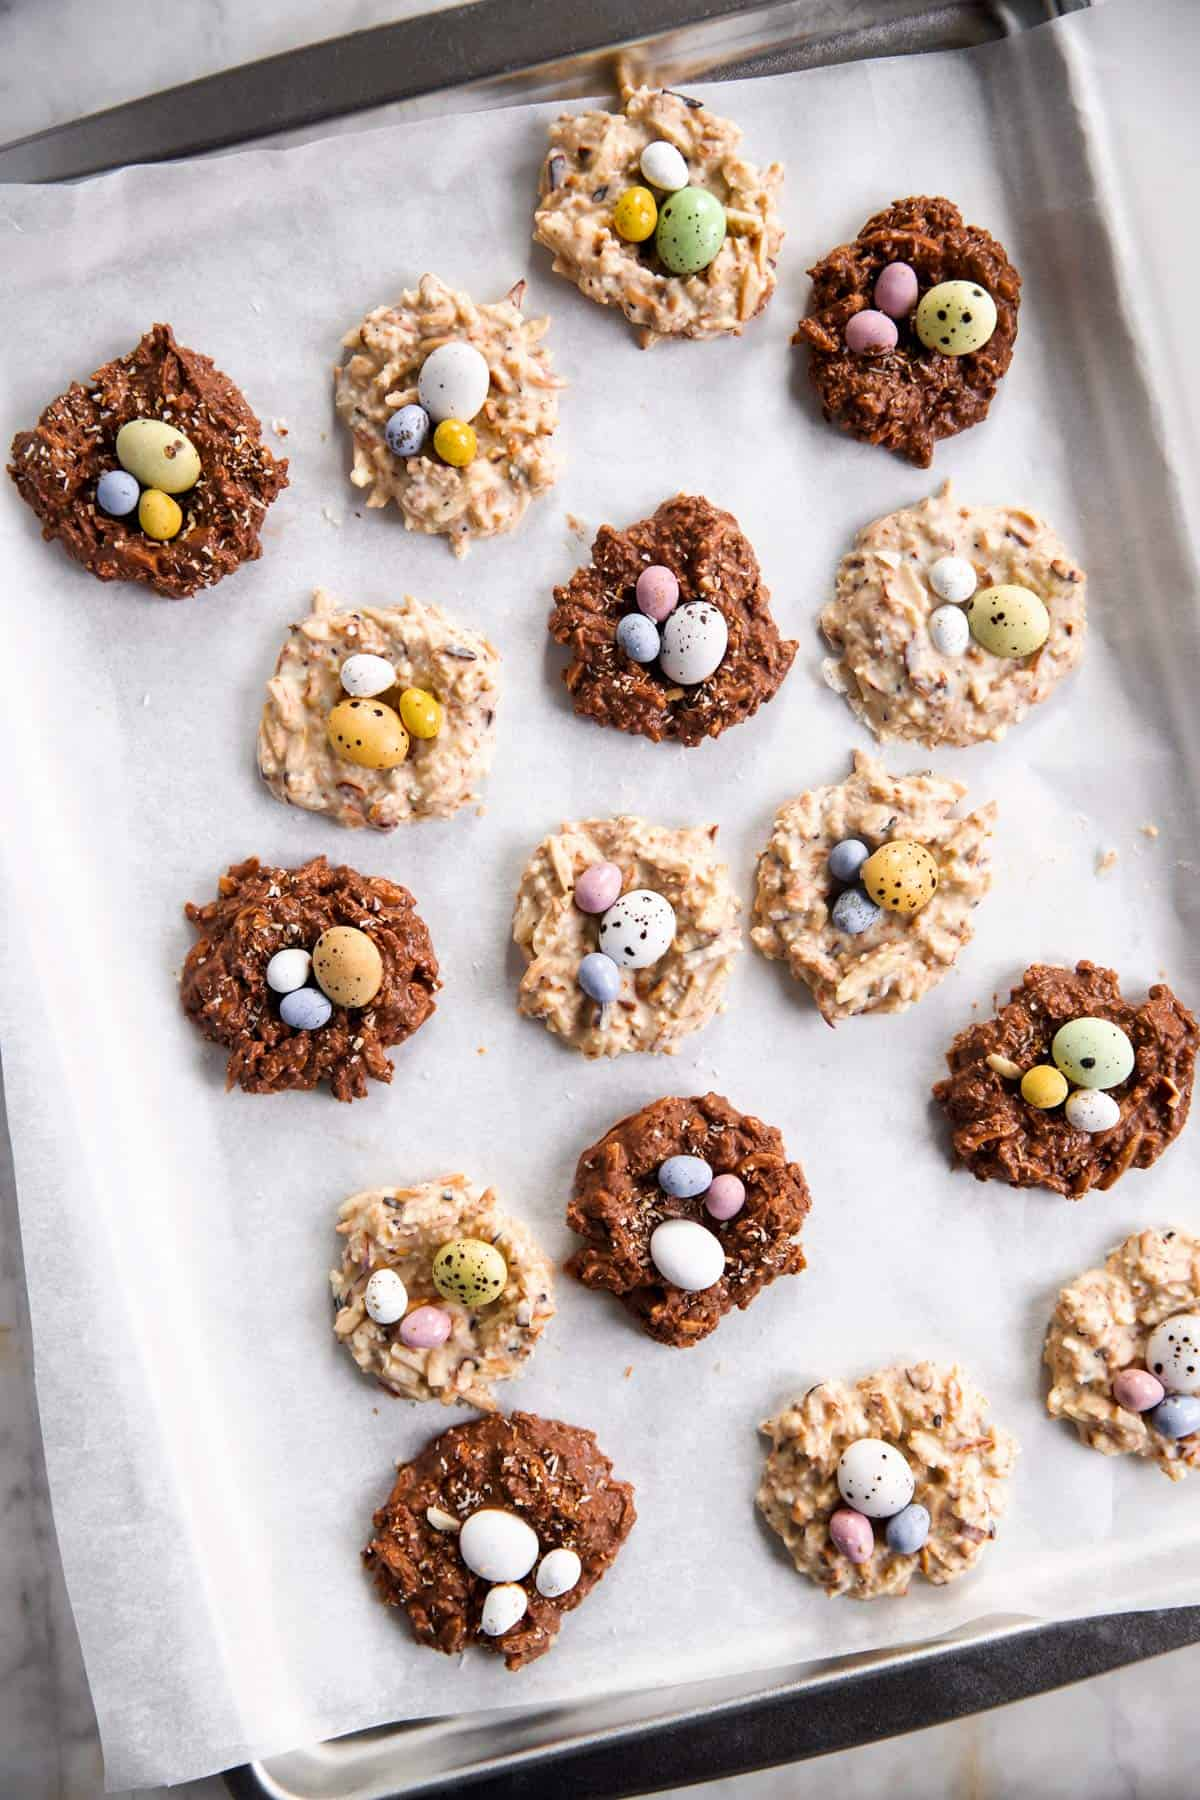 white and brown bird's nest cookies scattered over rimmed sheet pan lined with white baking parchment